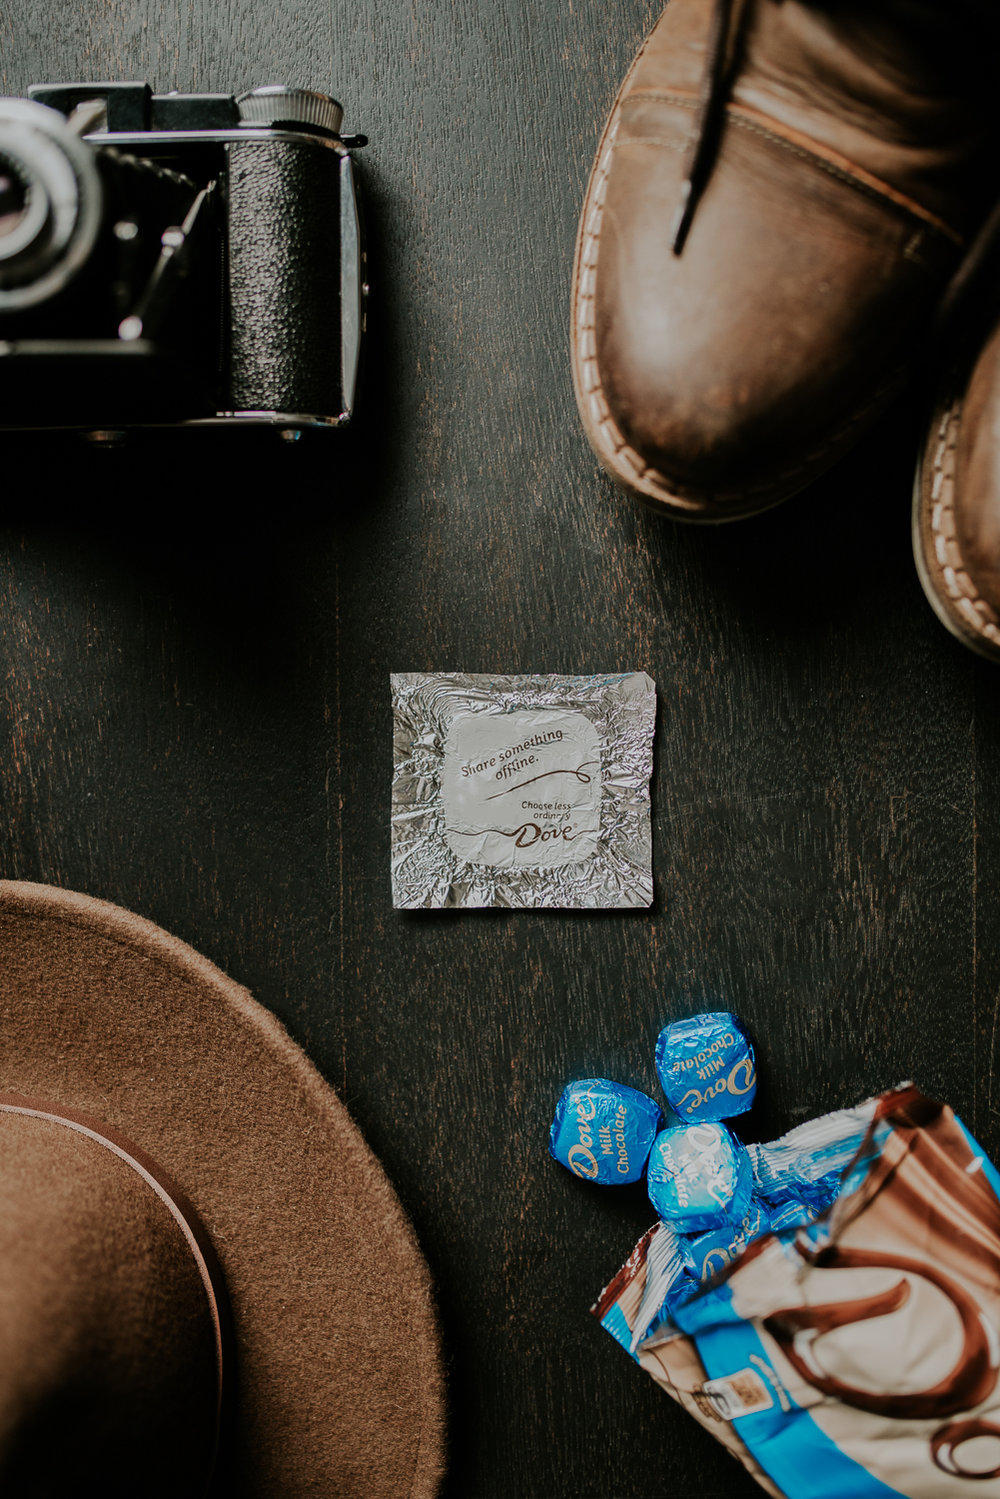 Overhead shot showing Dove Chocolate wrapper in the middle, boots, camera and hat on the outer edges of frame.